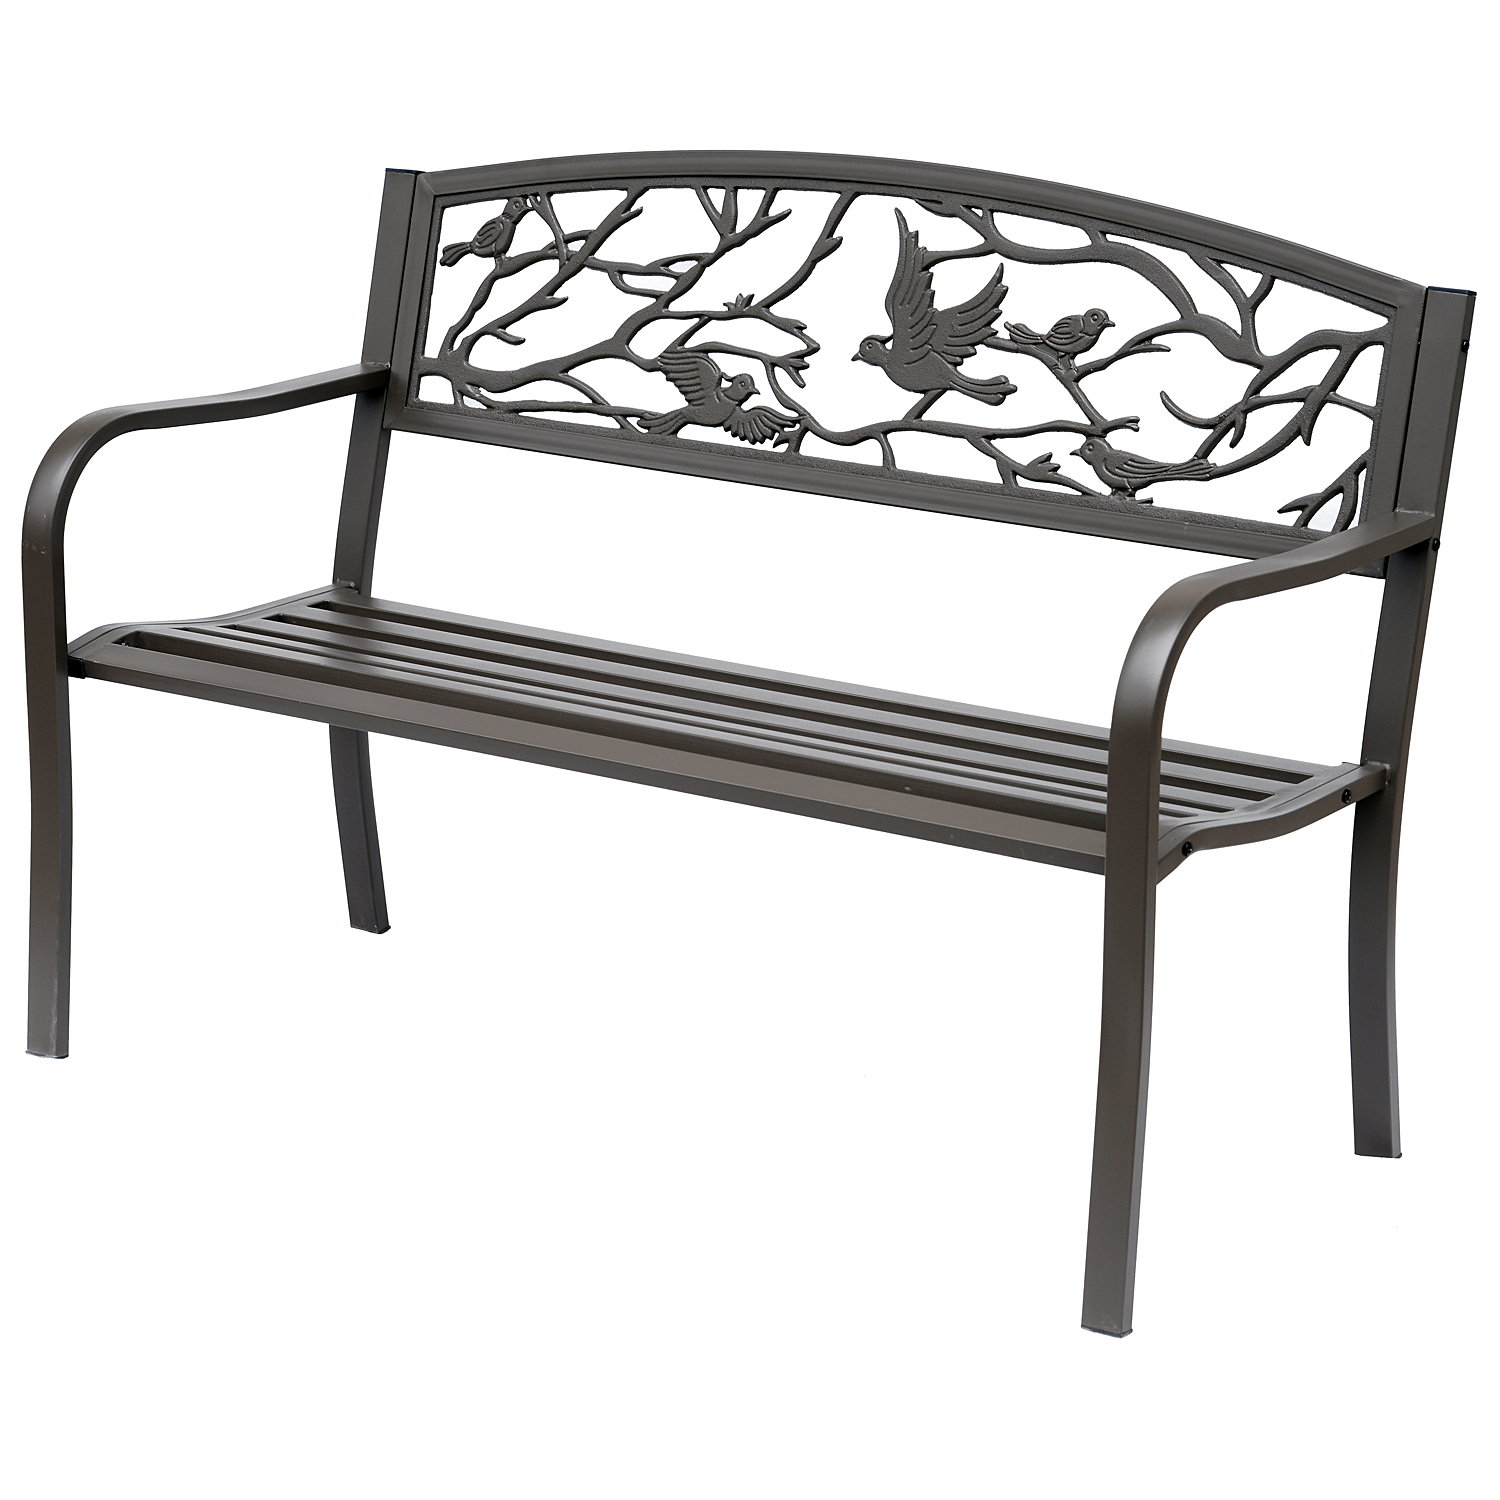 "Outsunny 50"" Vintage Bird Pattern Garden Cast Iron Patio Bench – Brown For Madeline Vintage Bird Cast Iron Garden Benches (View 18 of 25)"